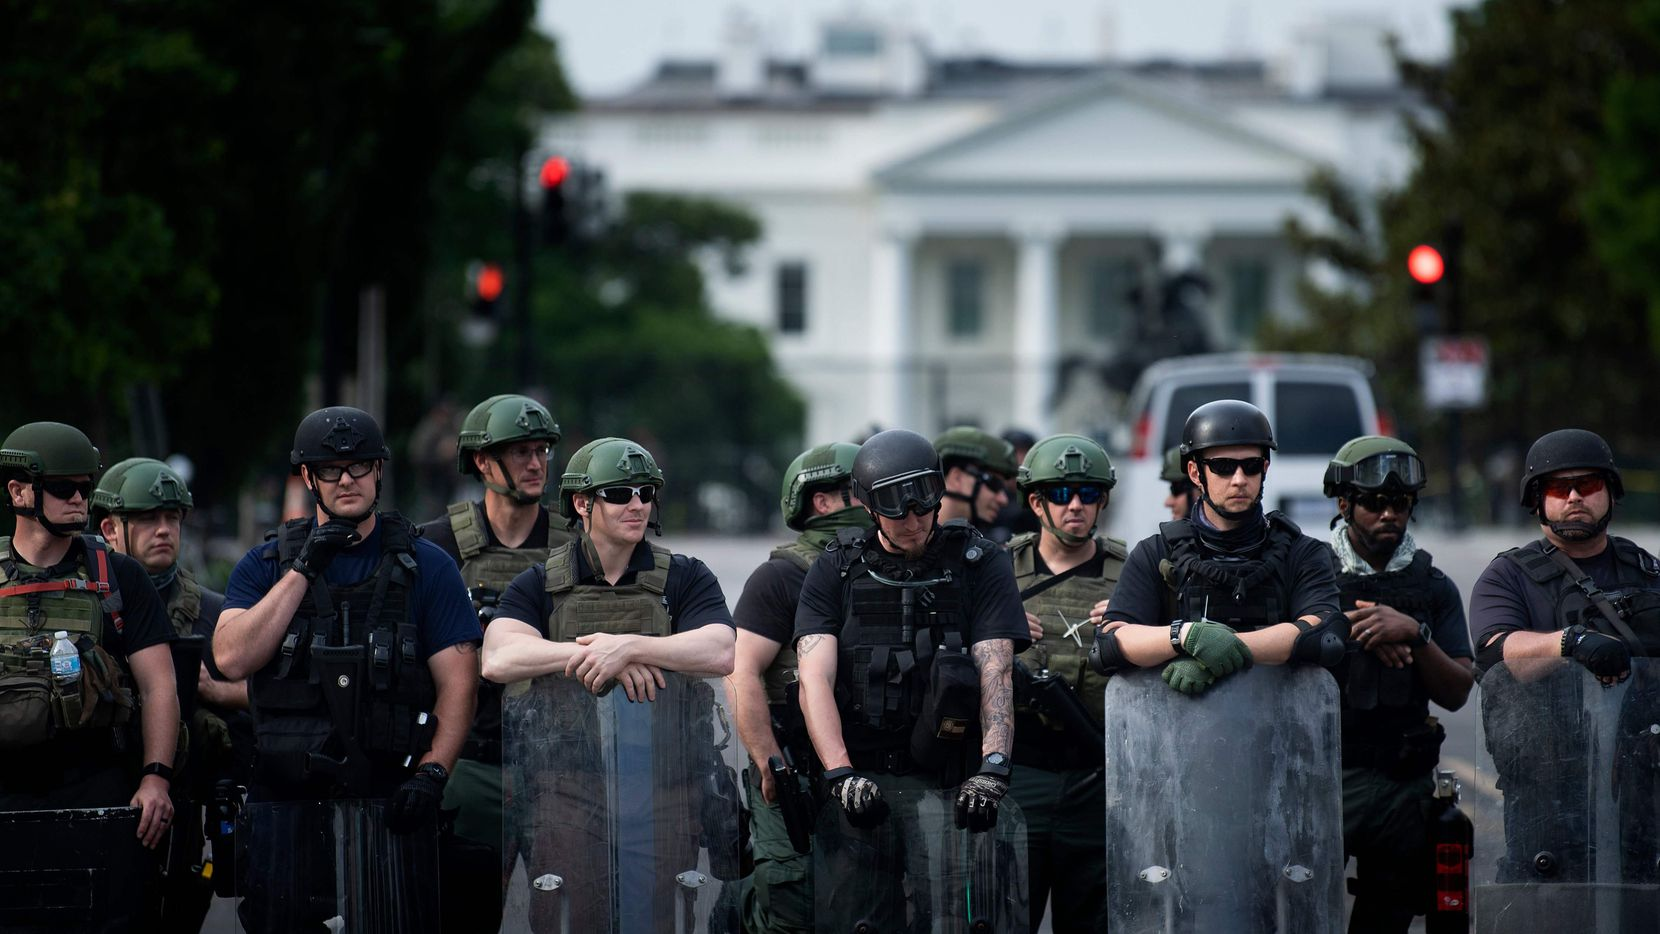 Riot forces at White House include tactical teams wearing insignia ...